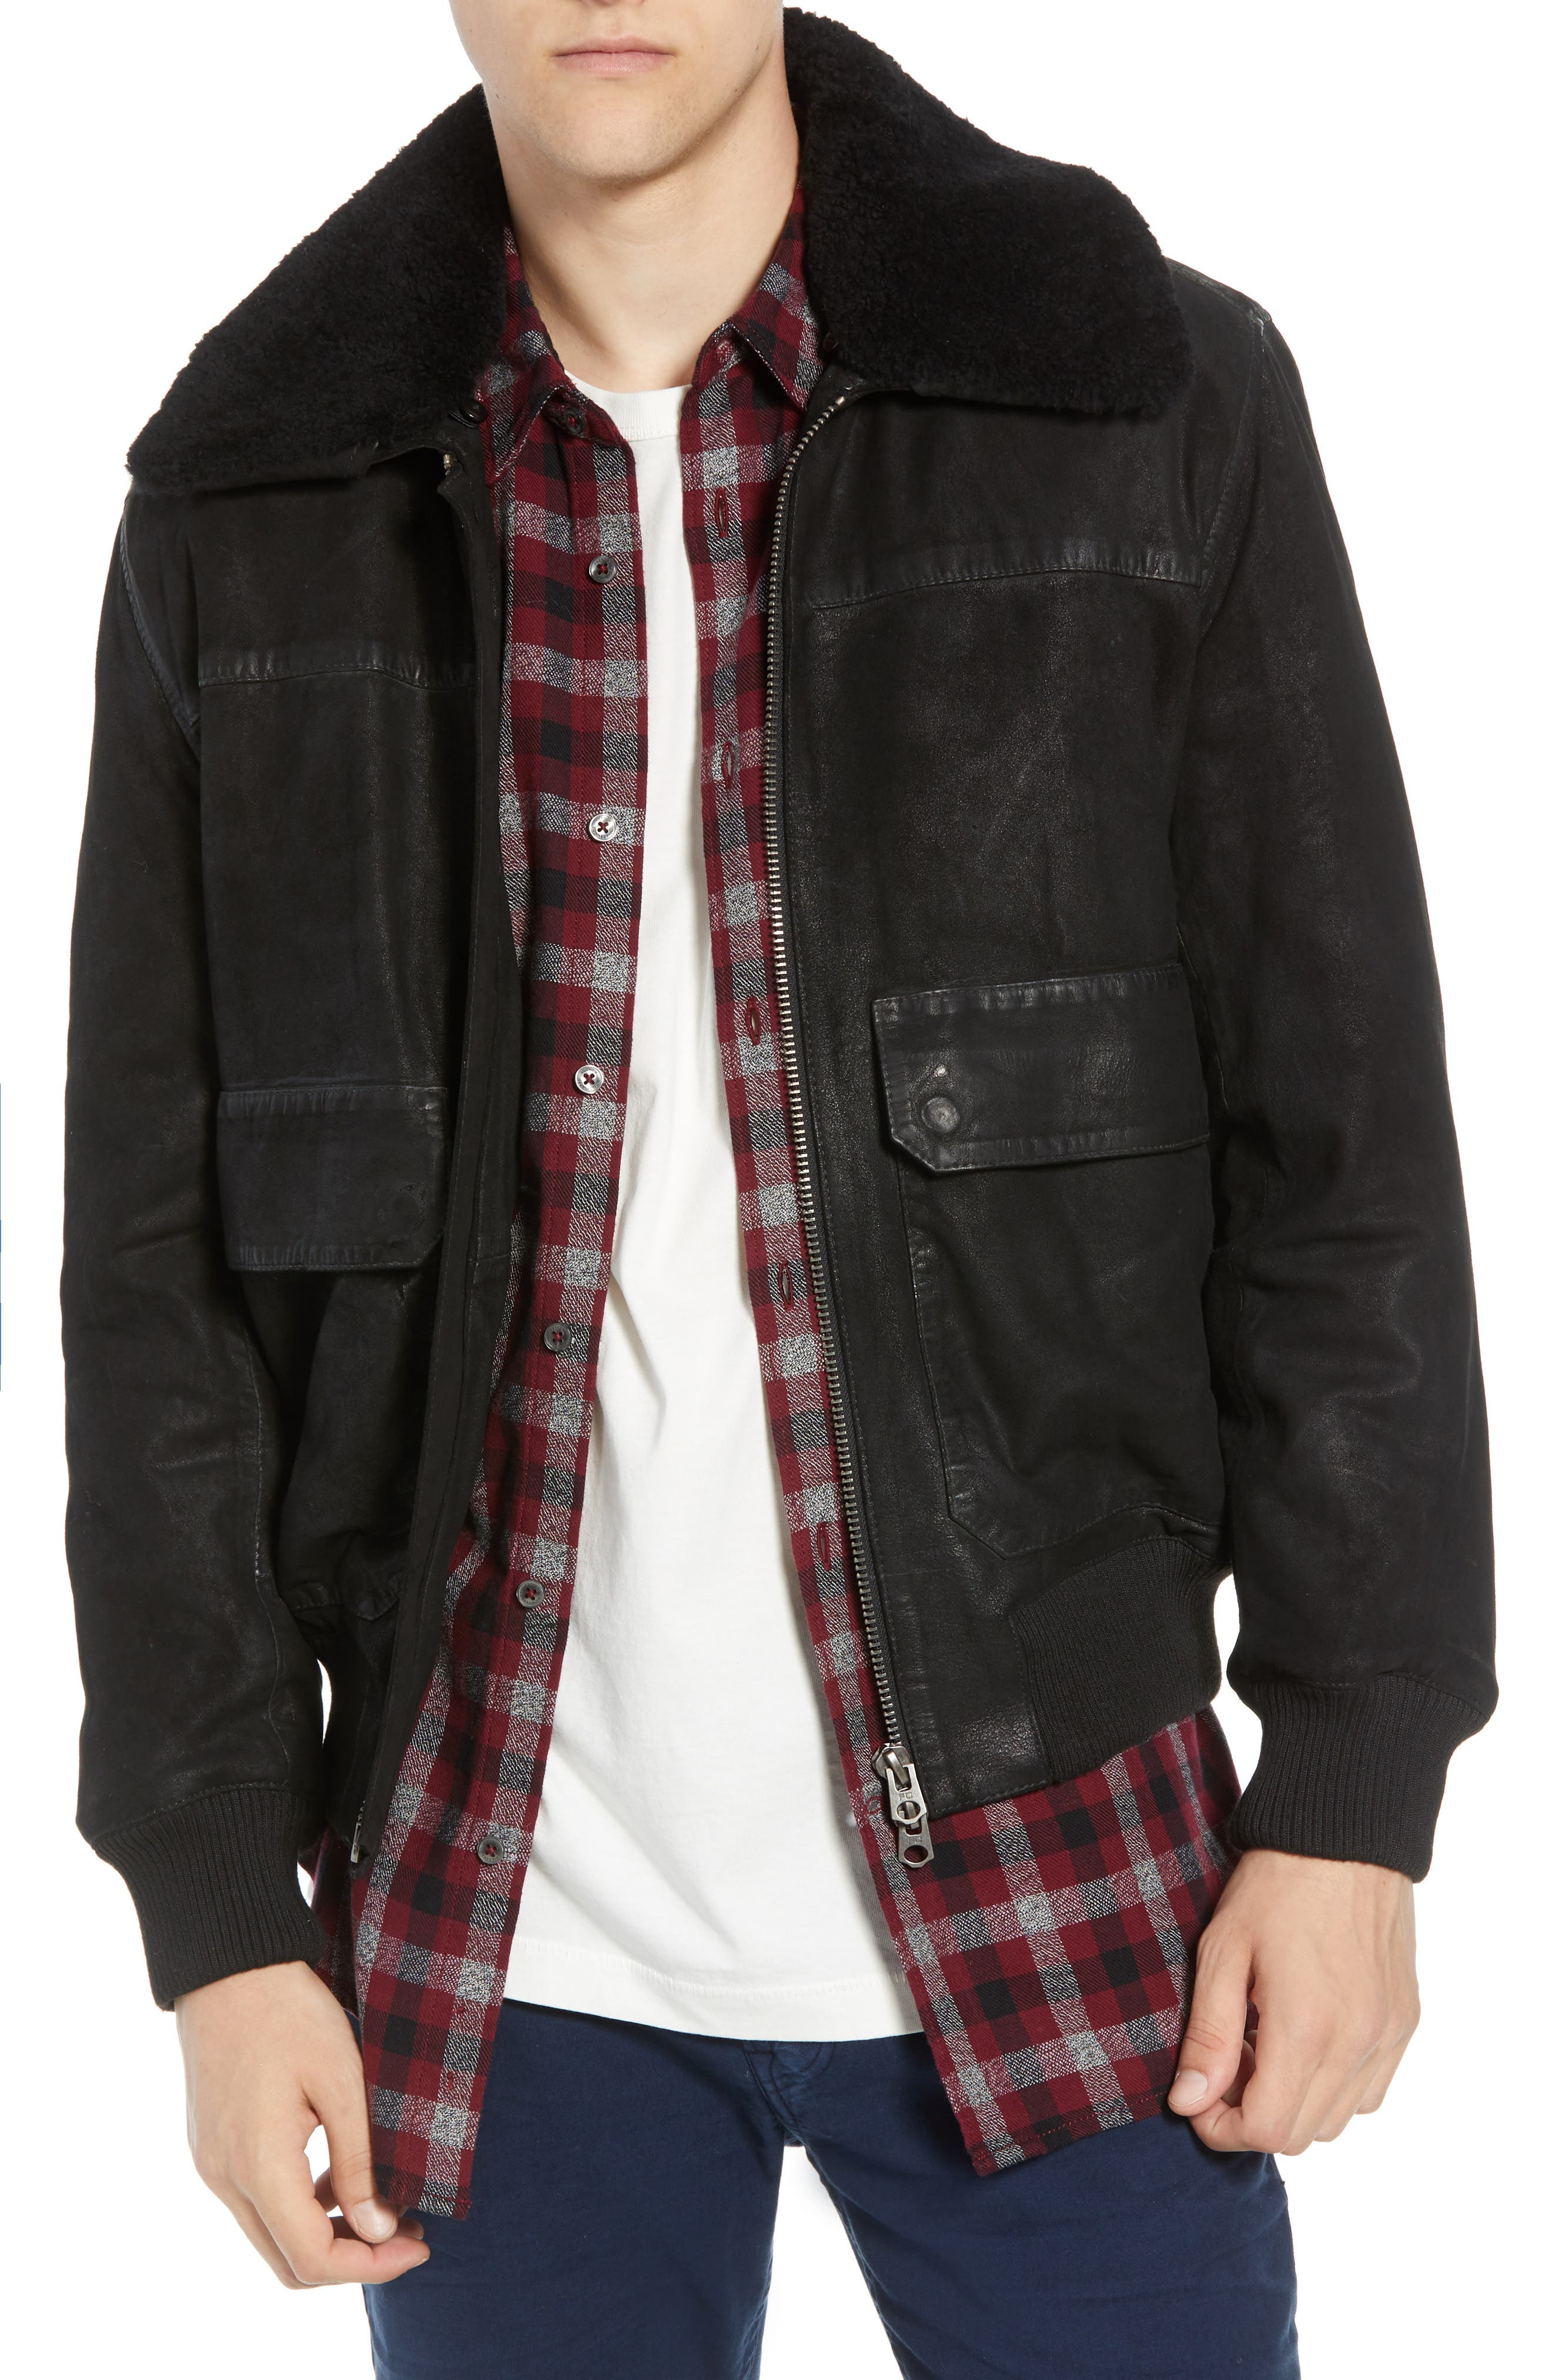 Men's French Connection Coats & Men's French Connection Jackets | Nordstrom